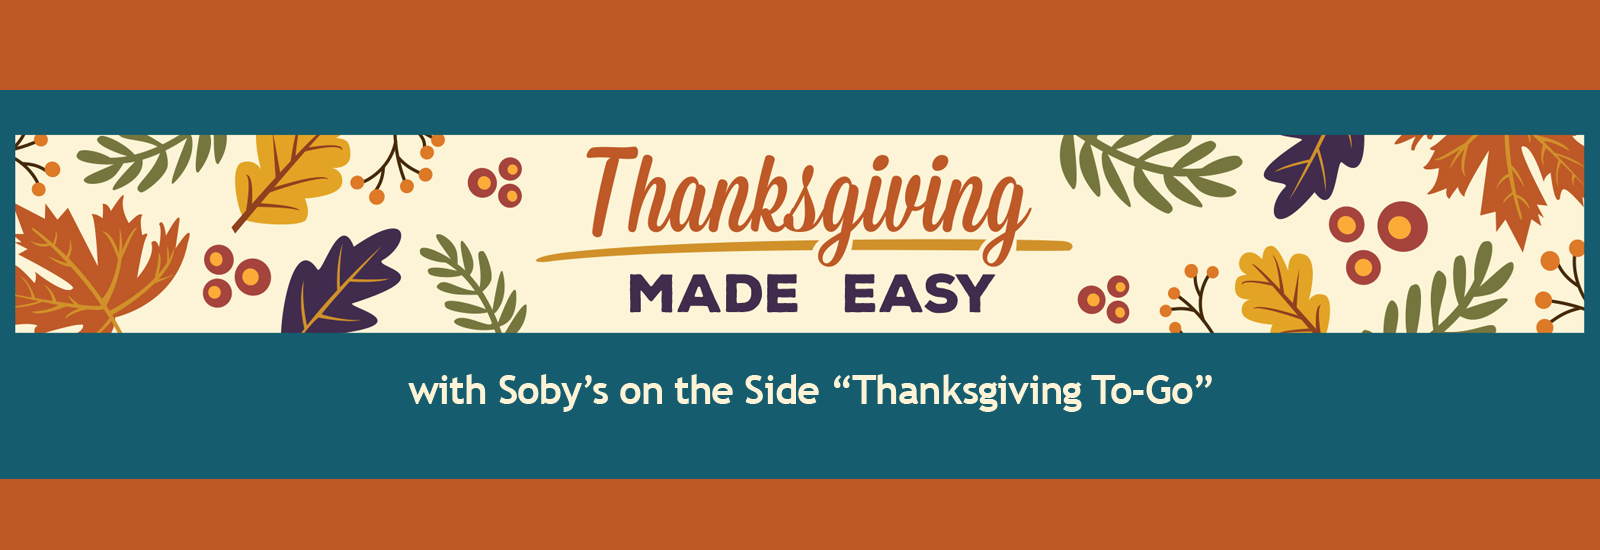 Soby's on the Side Thanksgiving